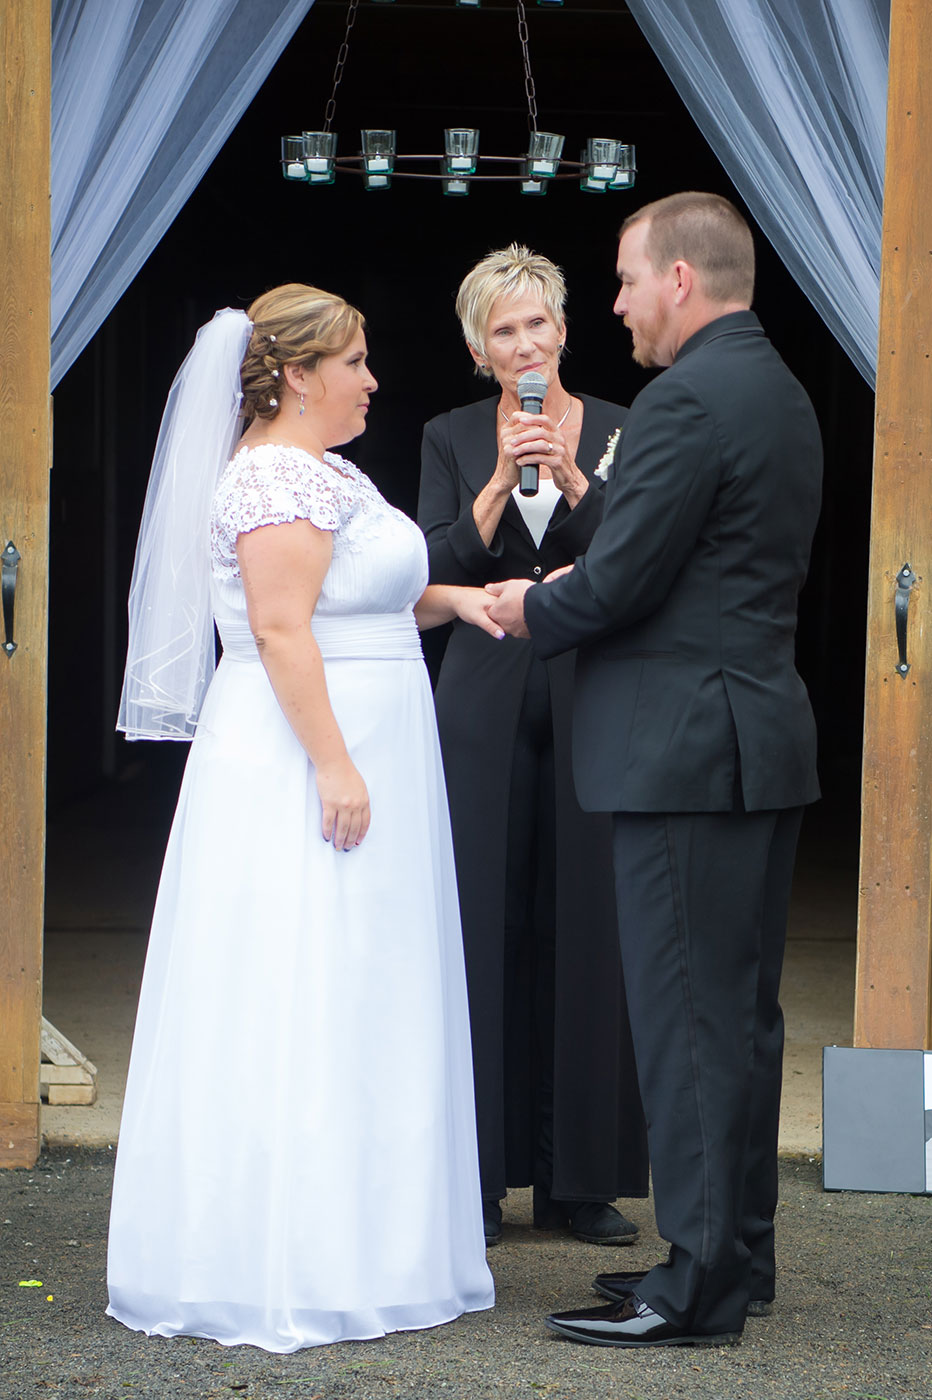 weddings-bobbi-danny-gallery14